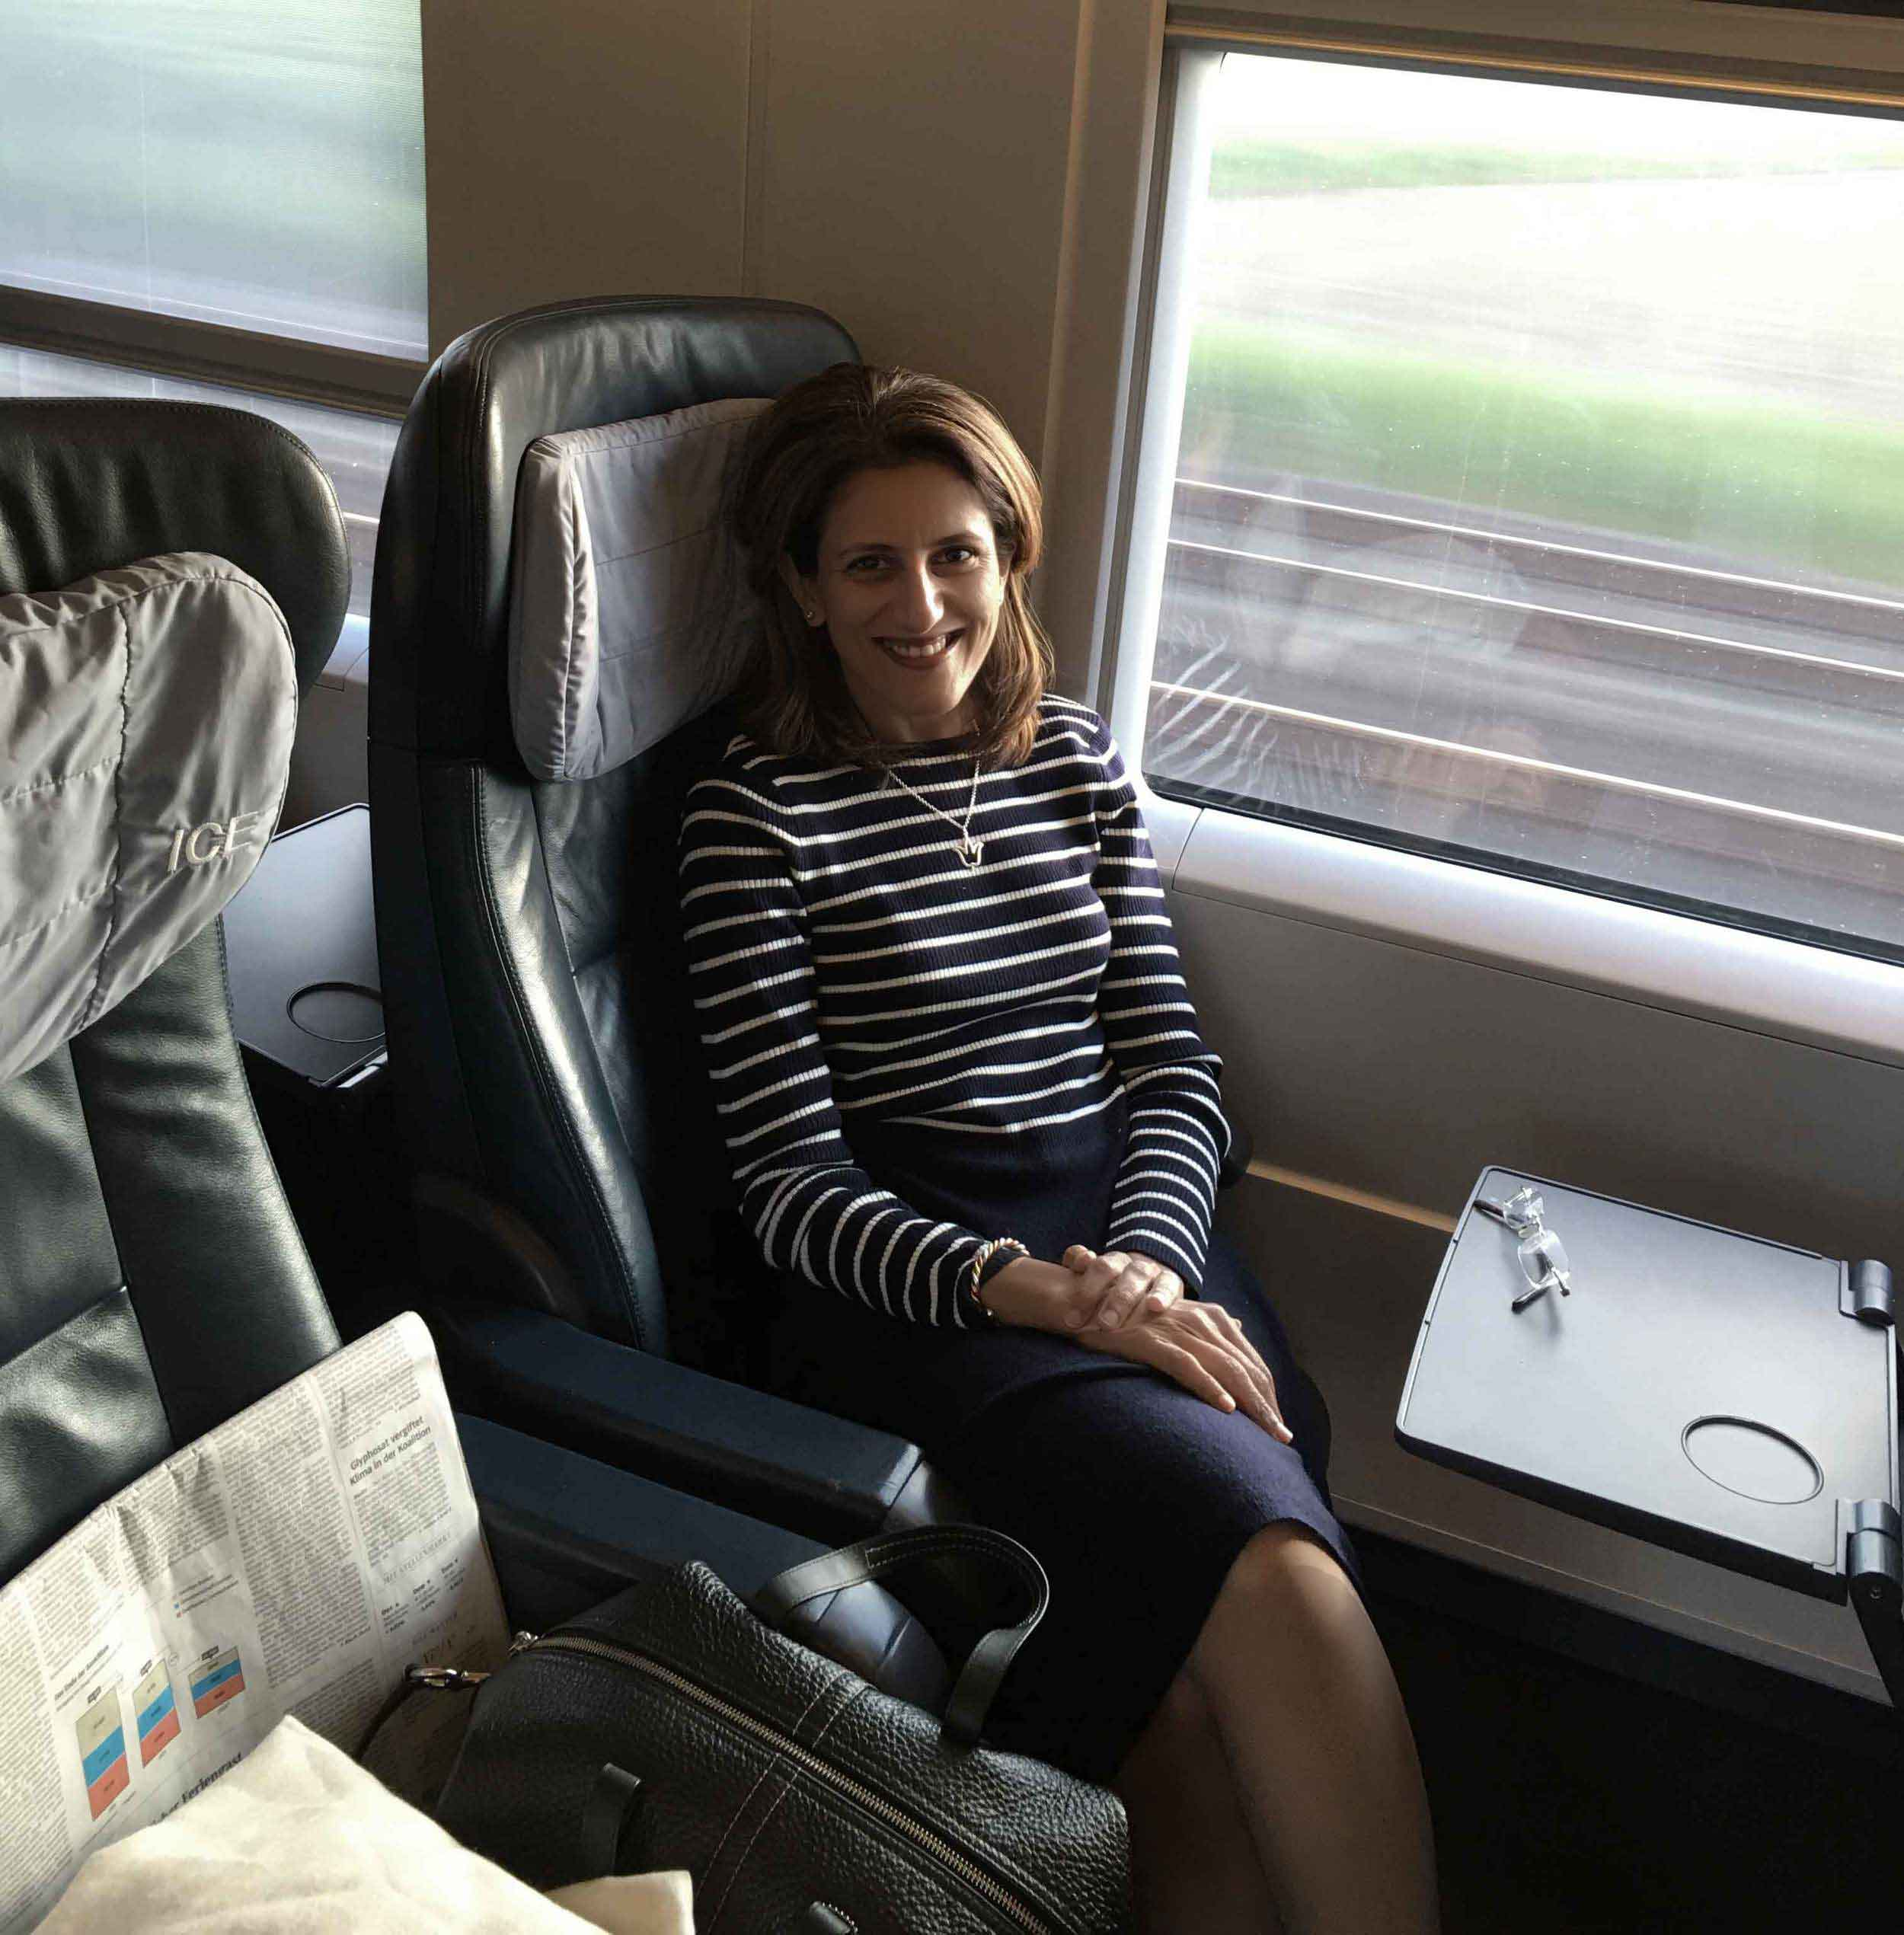 ICE, Inter City Express, First Class, German Rail. Image©thingstodot.com